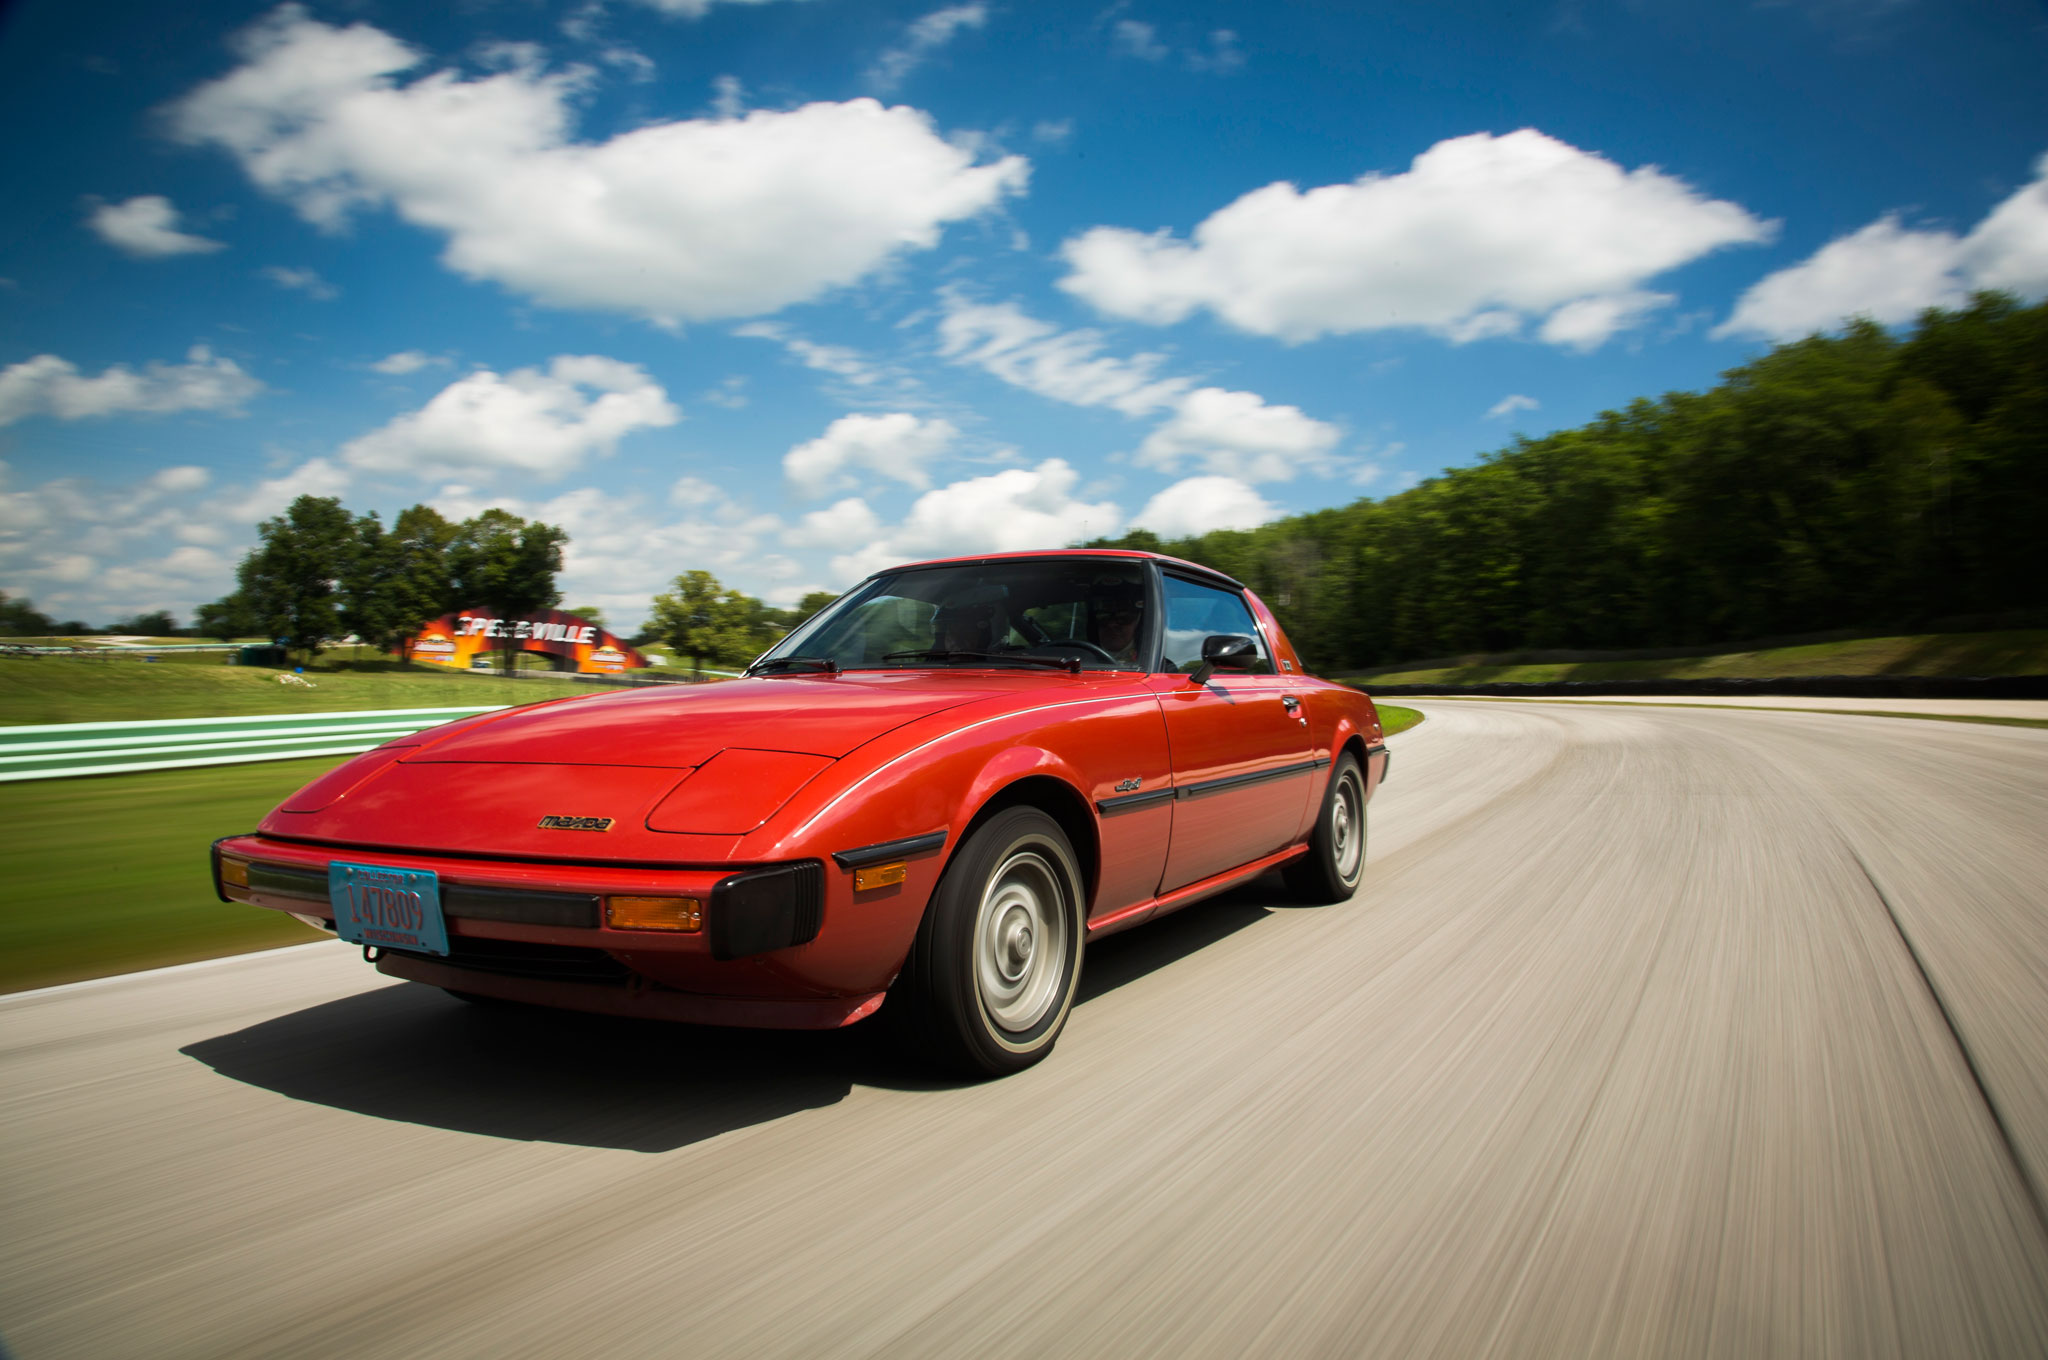 Take Dad And His 1980 Mazda Rx 7 To Road America